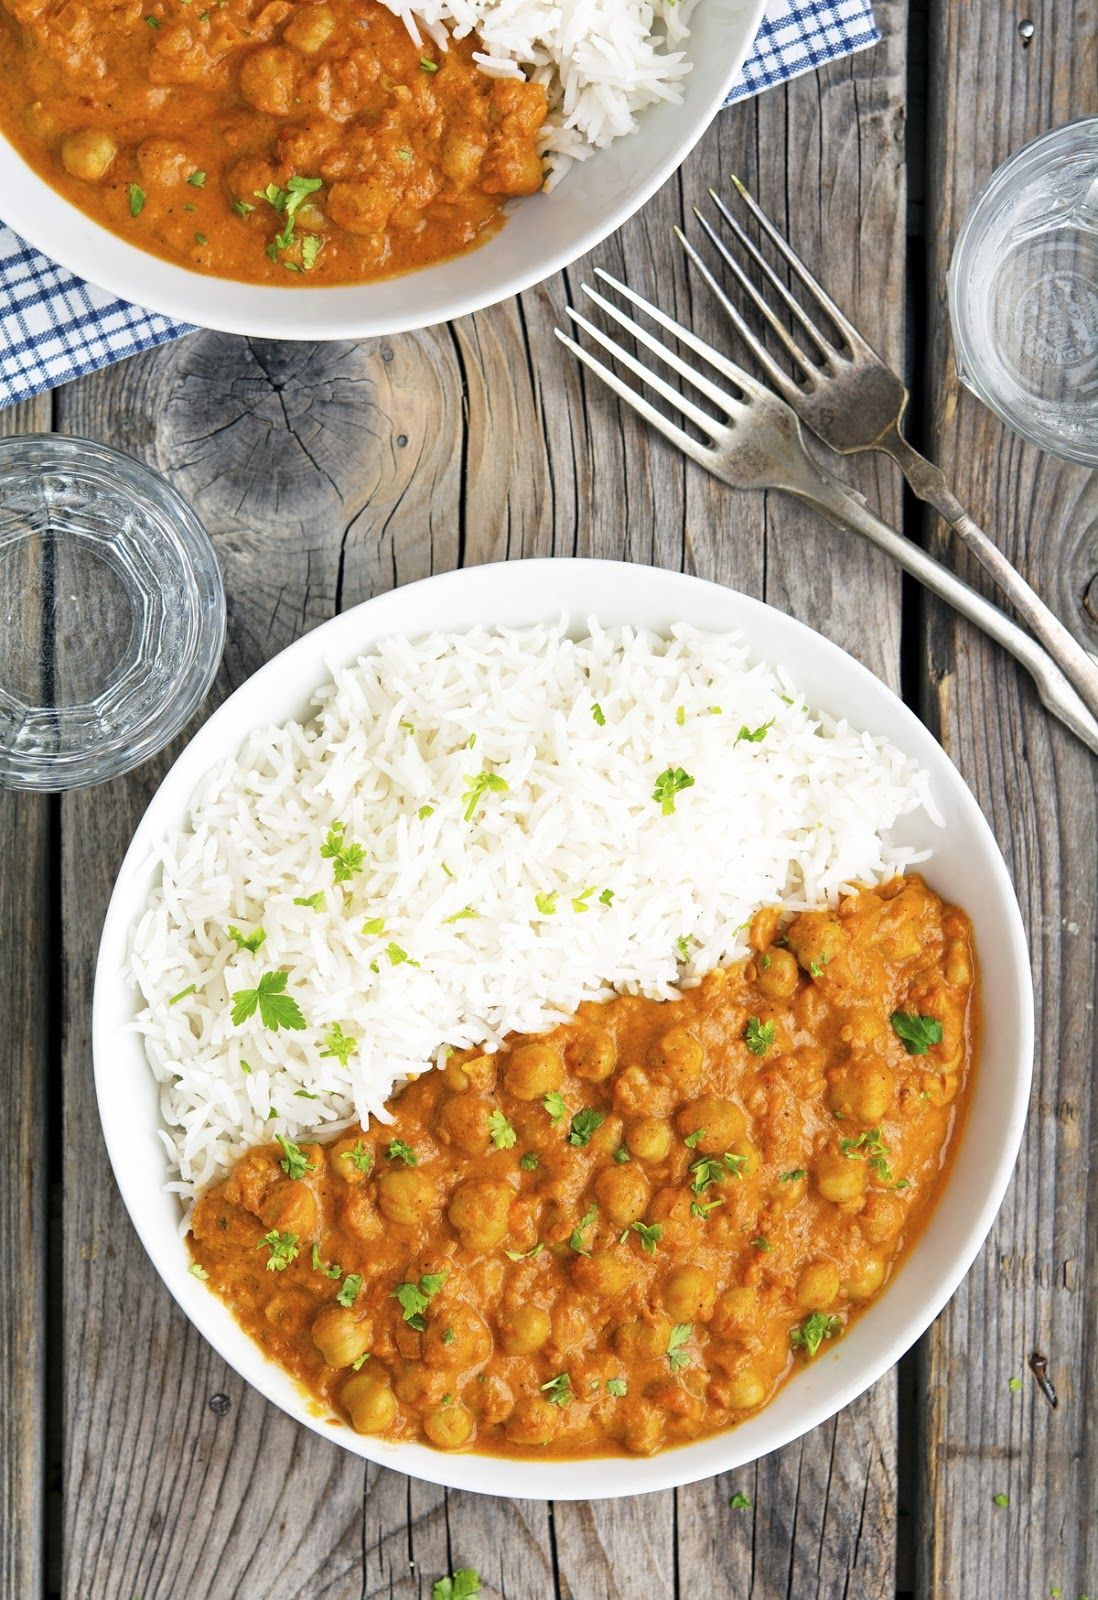 Best 25 punjabi food ideas on pinterest indian cuisine east indian food recipes and veg for Cuisine 728